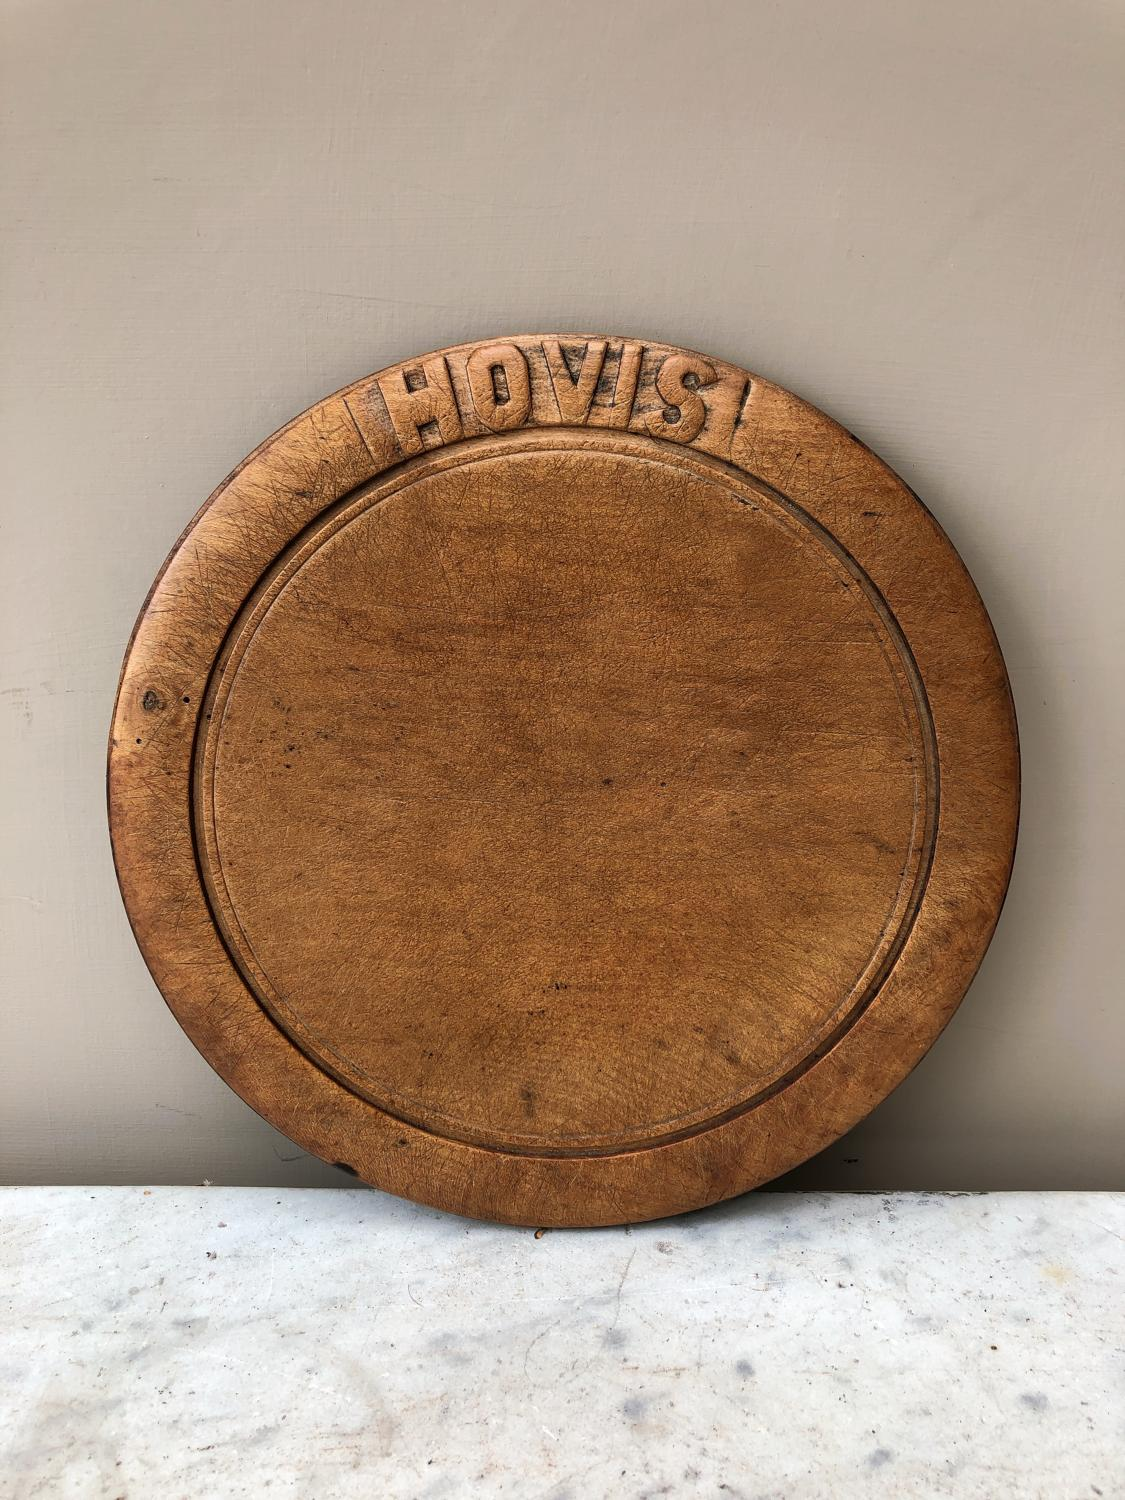 Early 20th Century Advertising Bread Board - Hovis